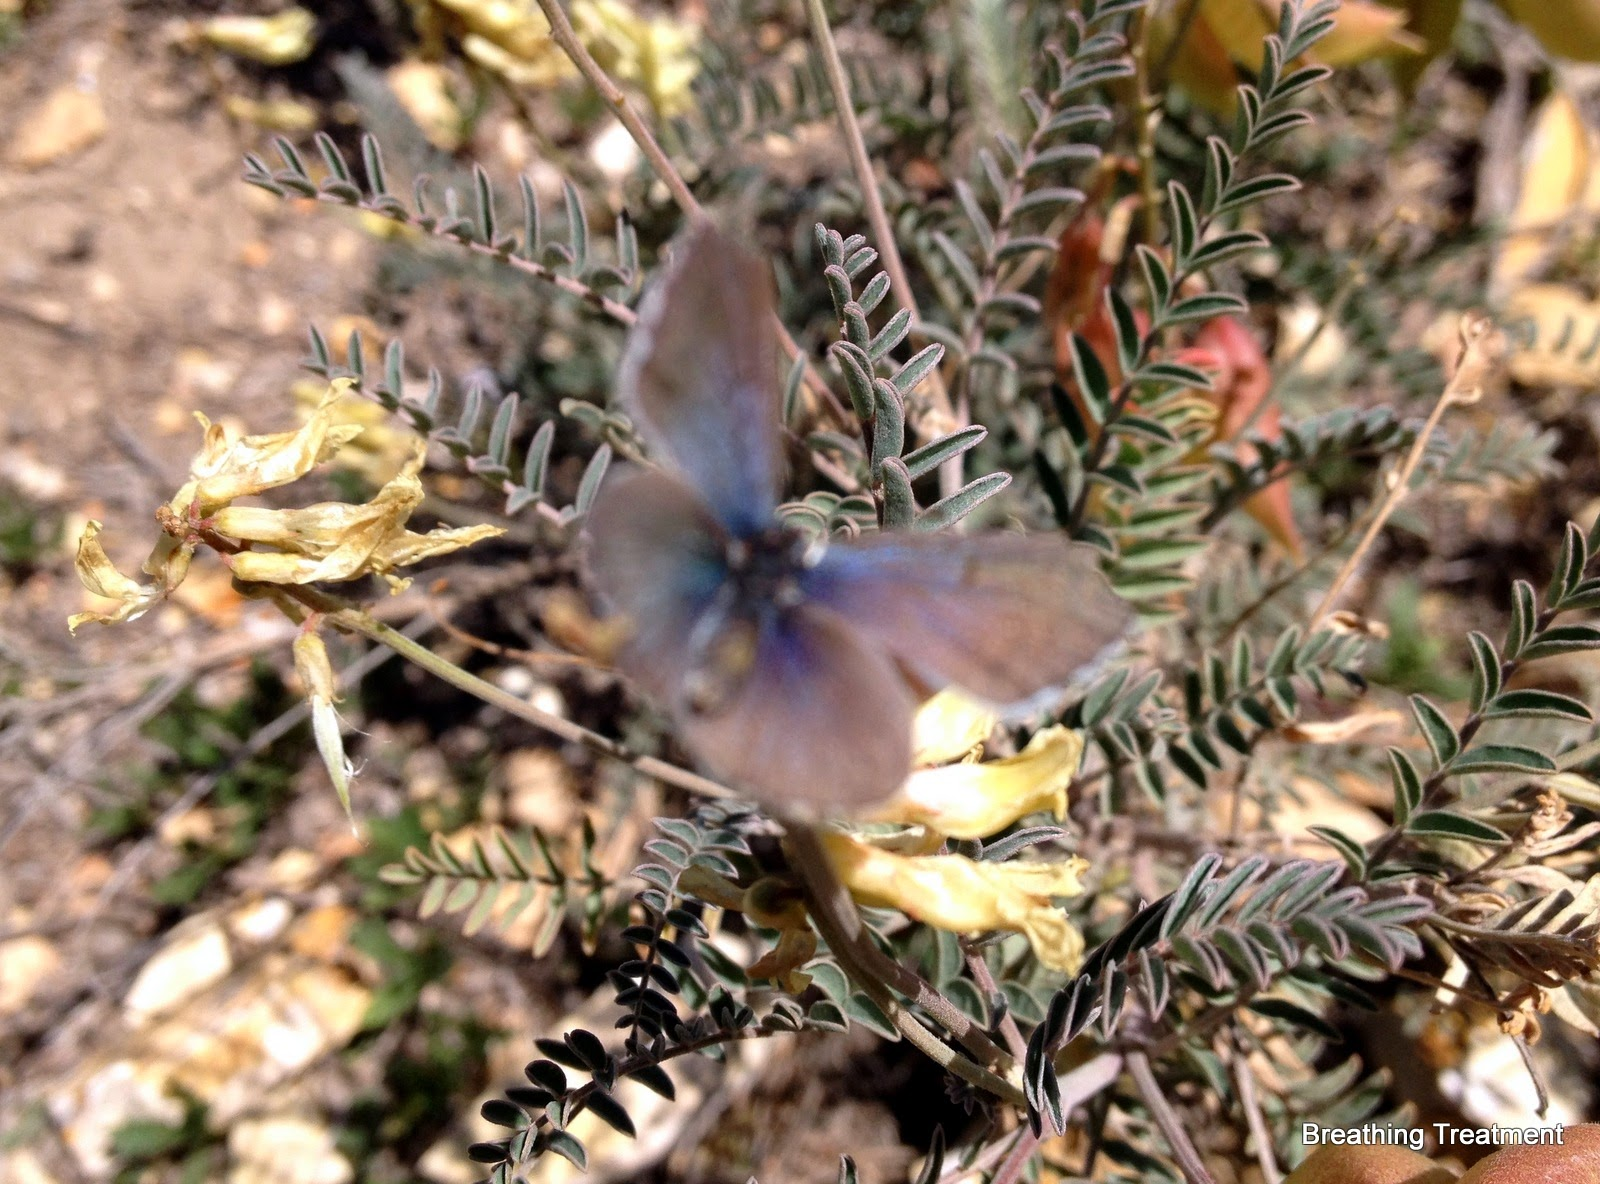 (Rattlepod), the host plant of the Palos Verdes Blue butterfly with PV Blue